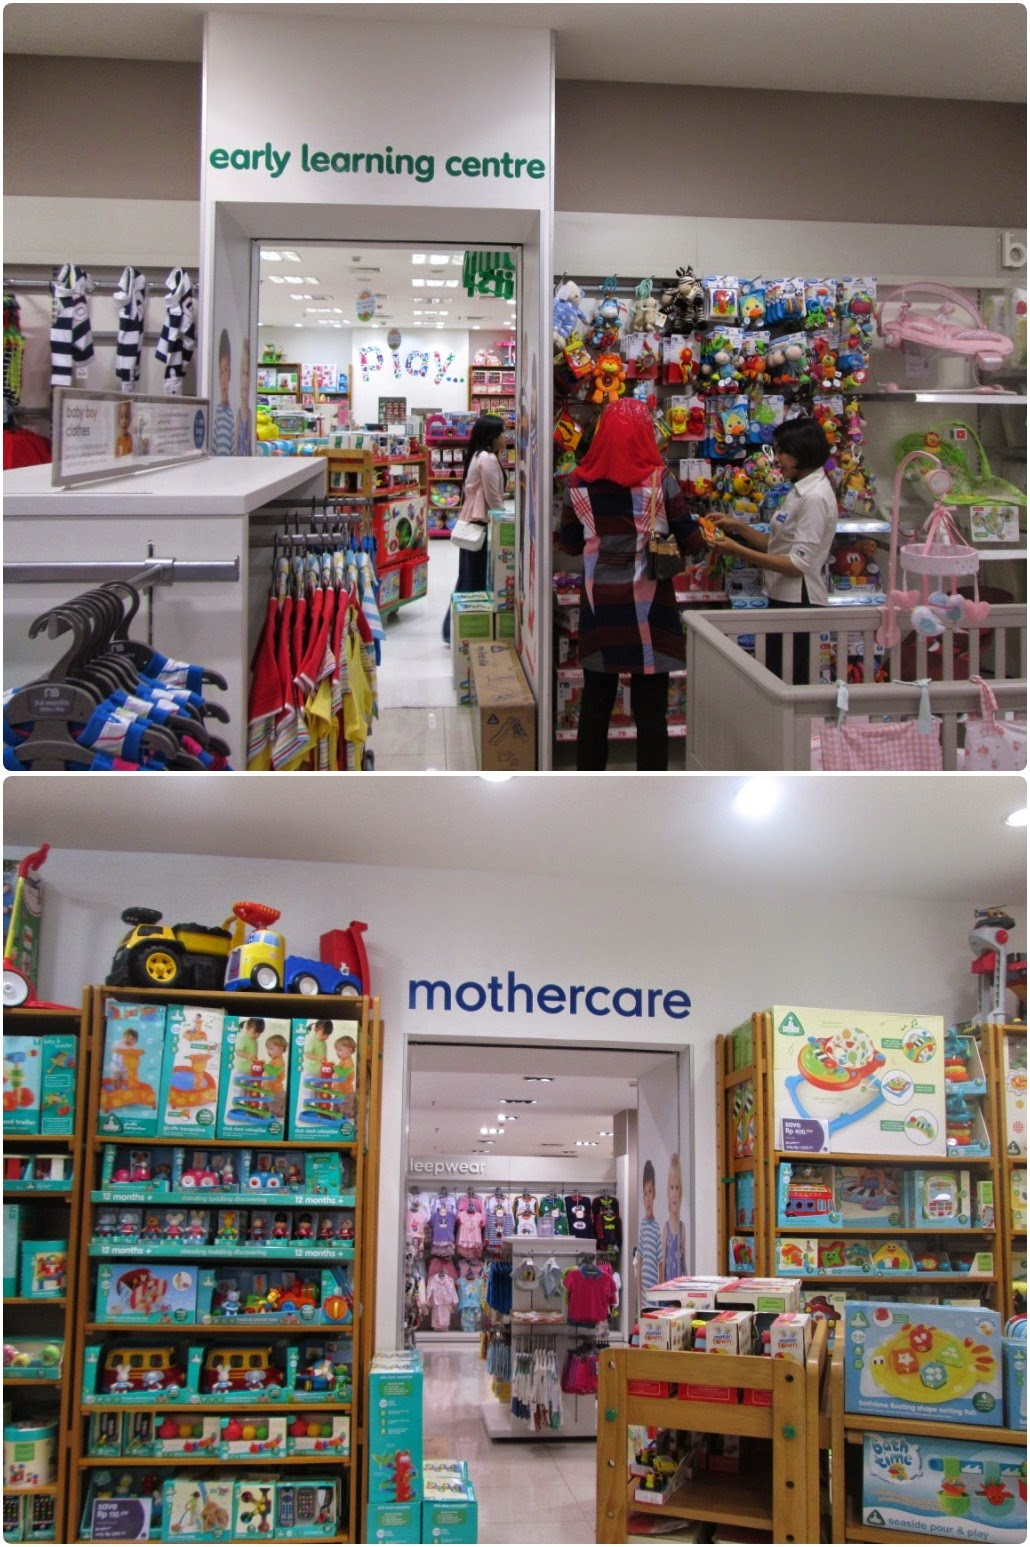 Connecting Door Mothercare & ELC